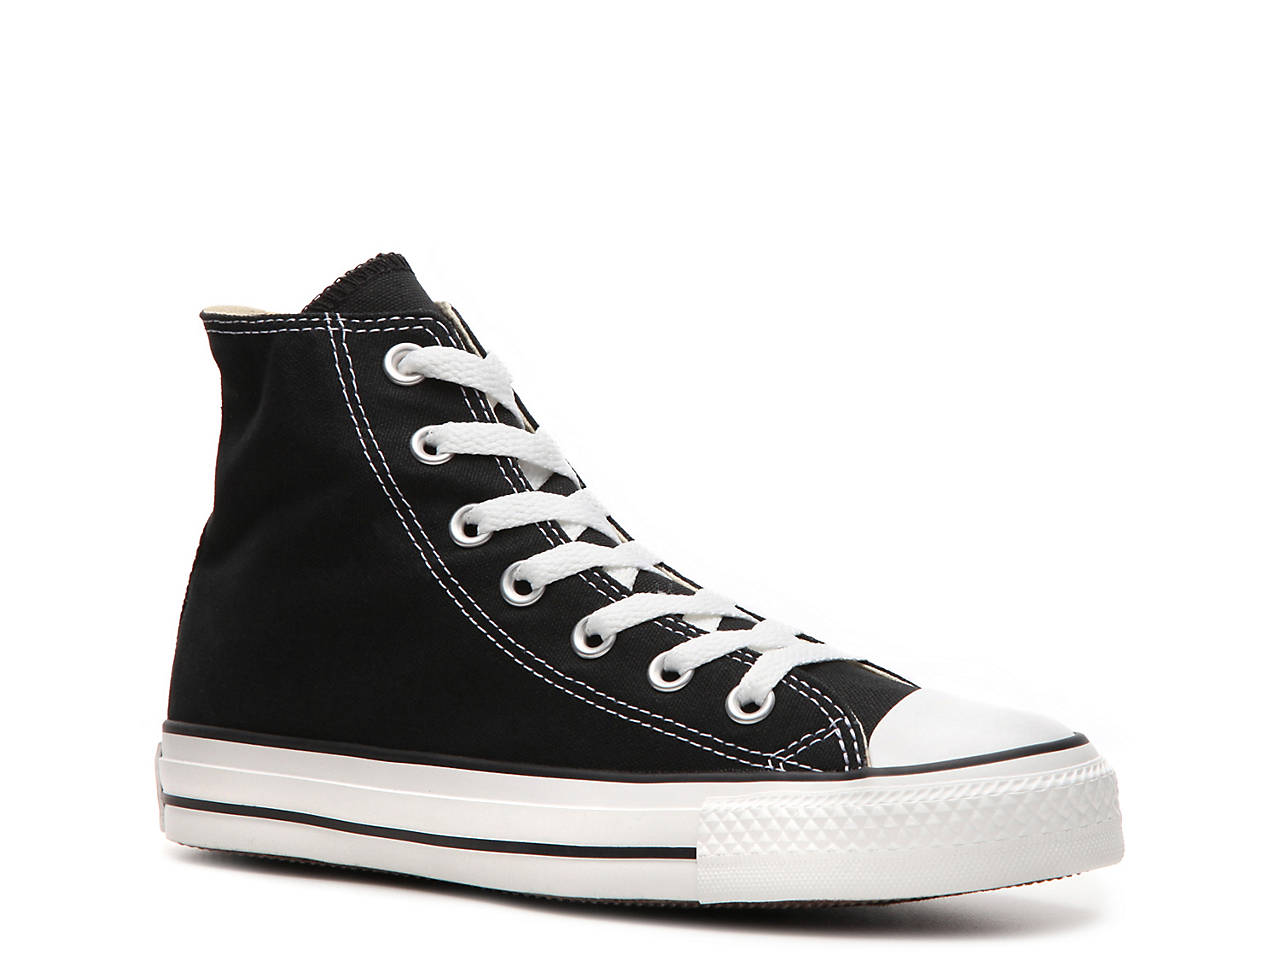 Converse Chuck Taylor All Star High-Top Sneaker - Women s Women s ... 0976d0f438